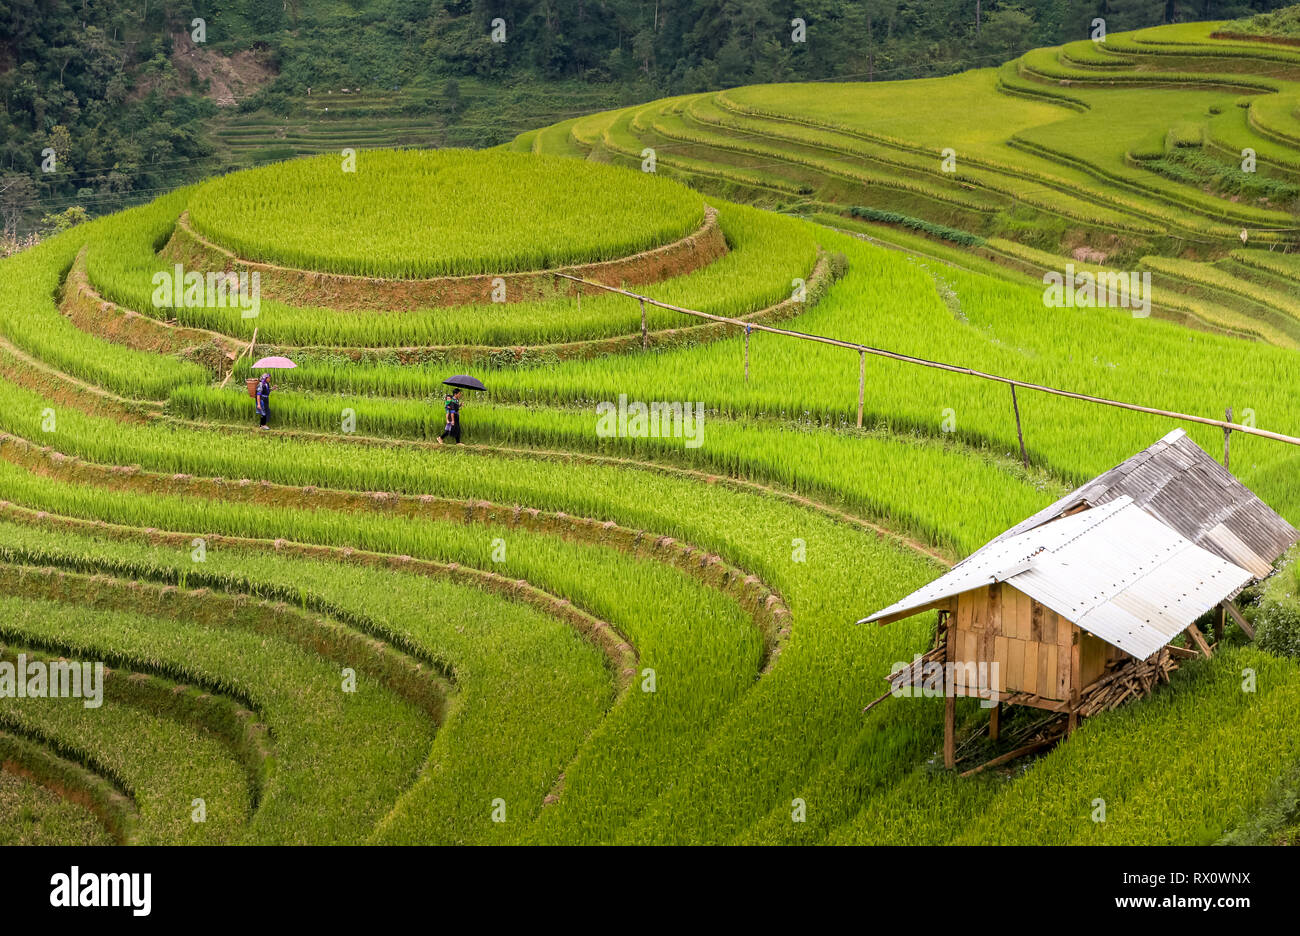 on the rice terraces - Stock Image